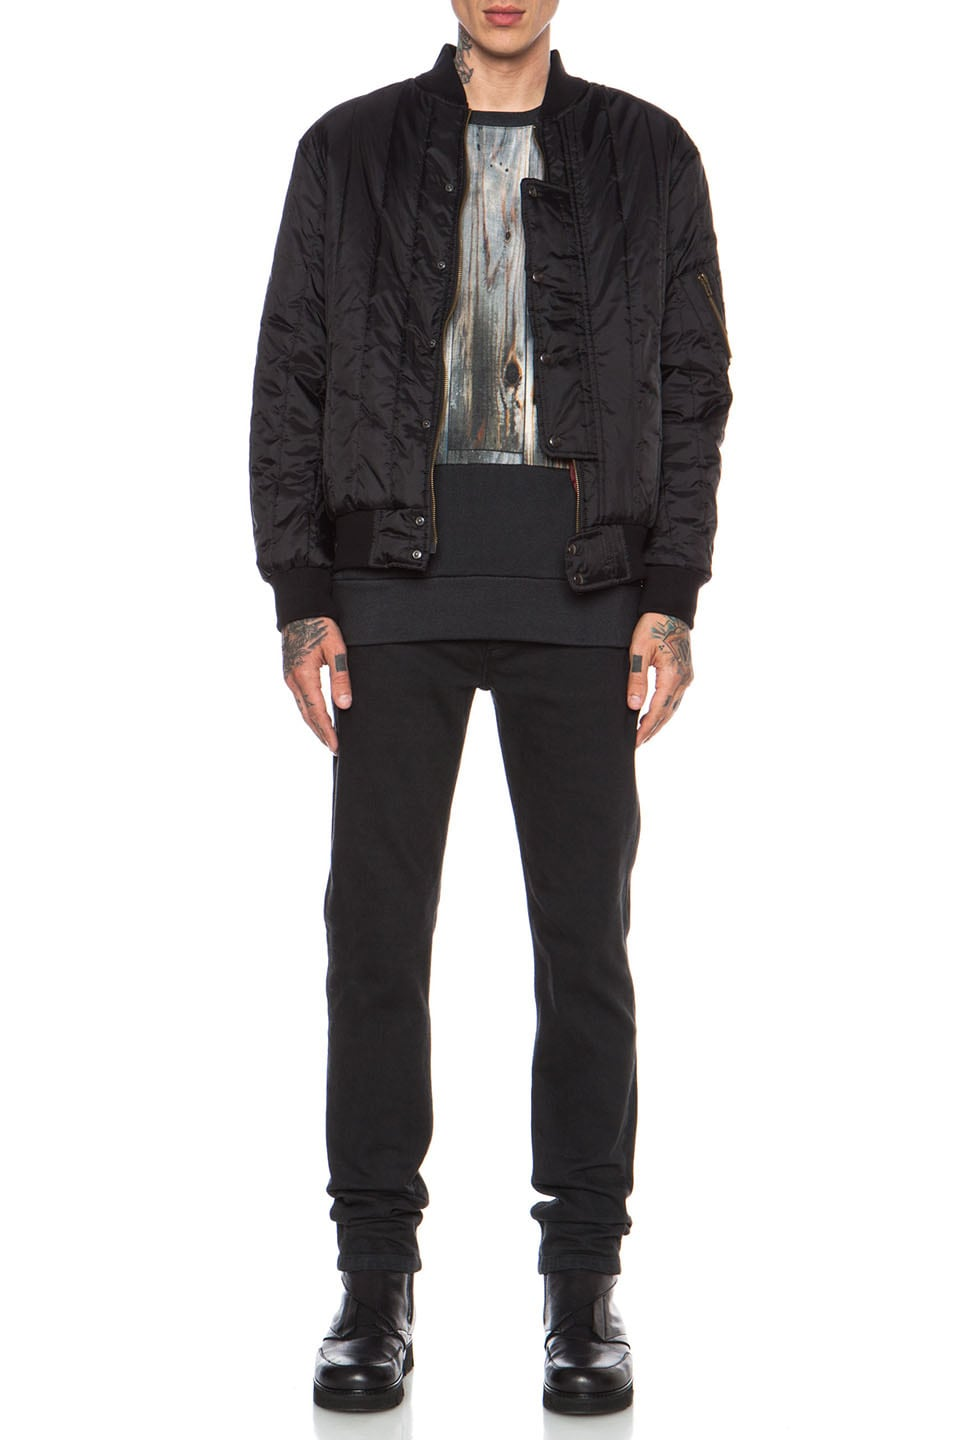 Casely Hayford Lambton Quilted Nylon Bomber Jacket In Black Fwrd